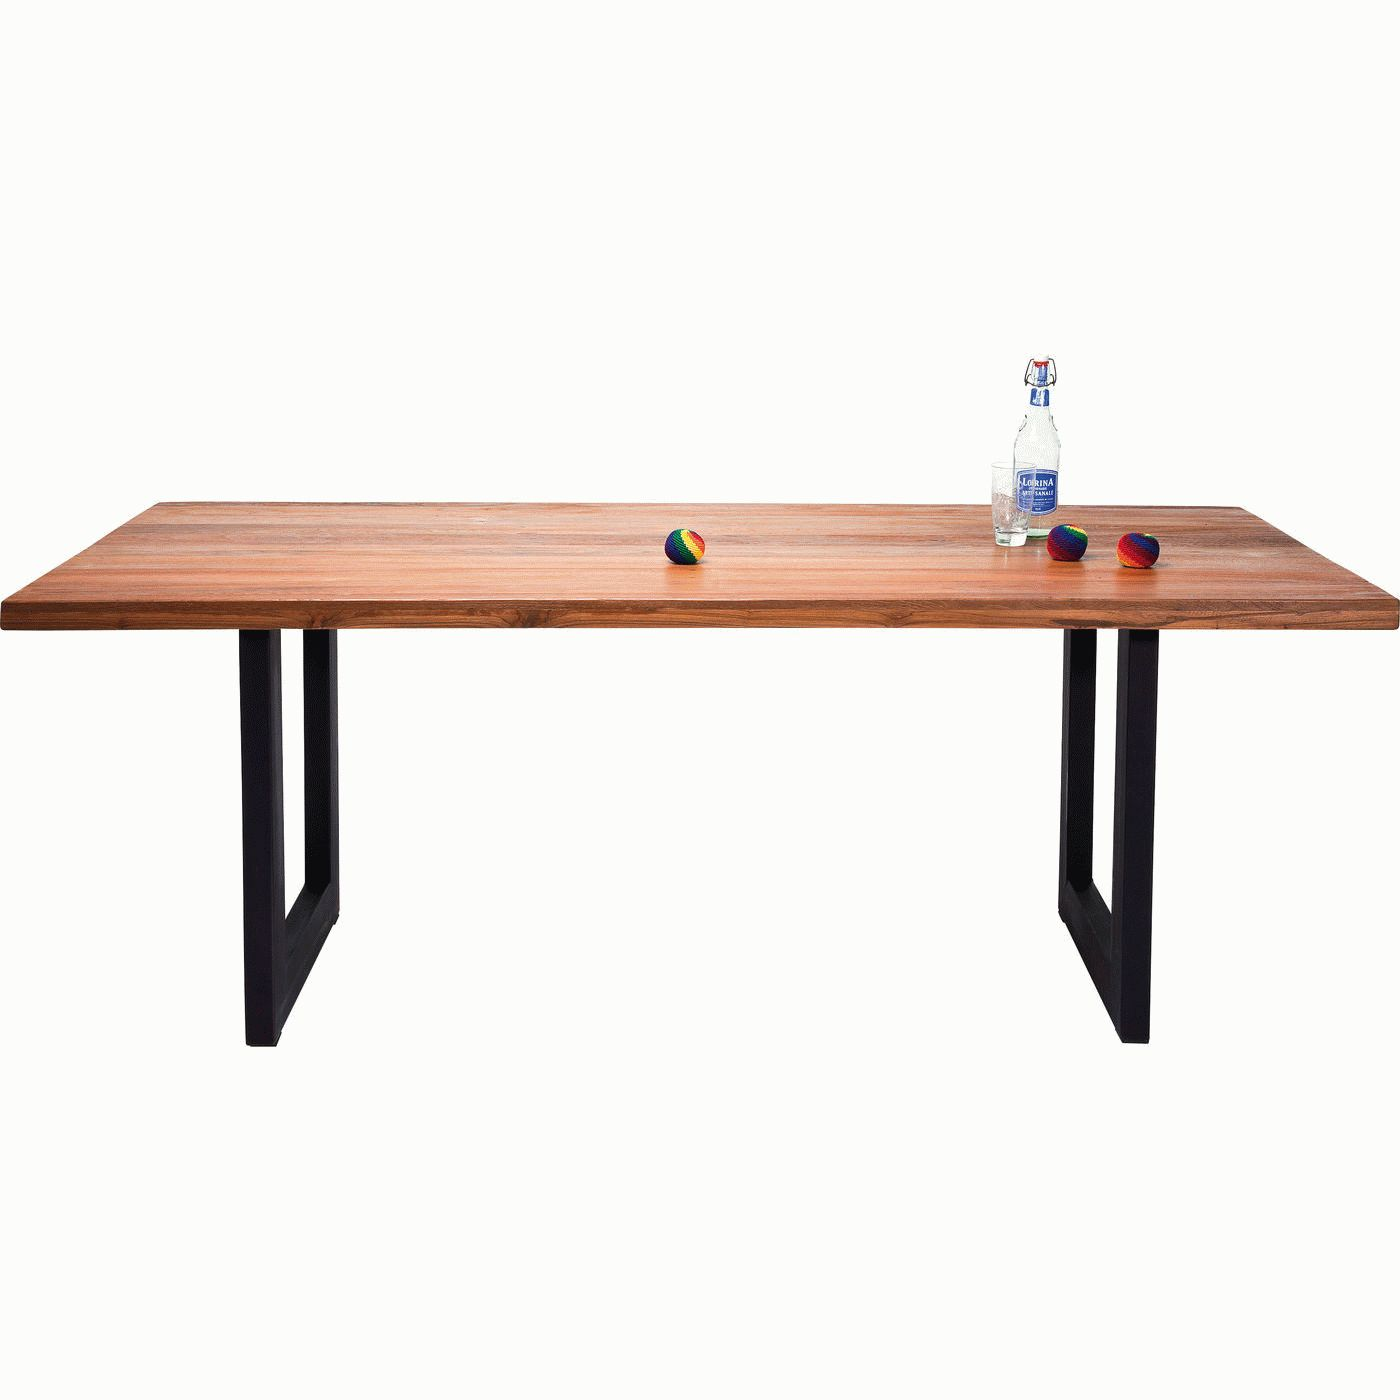 Factory Table Wood 200x90cm